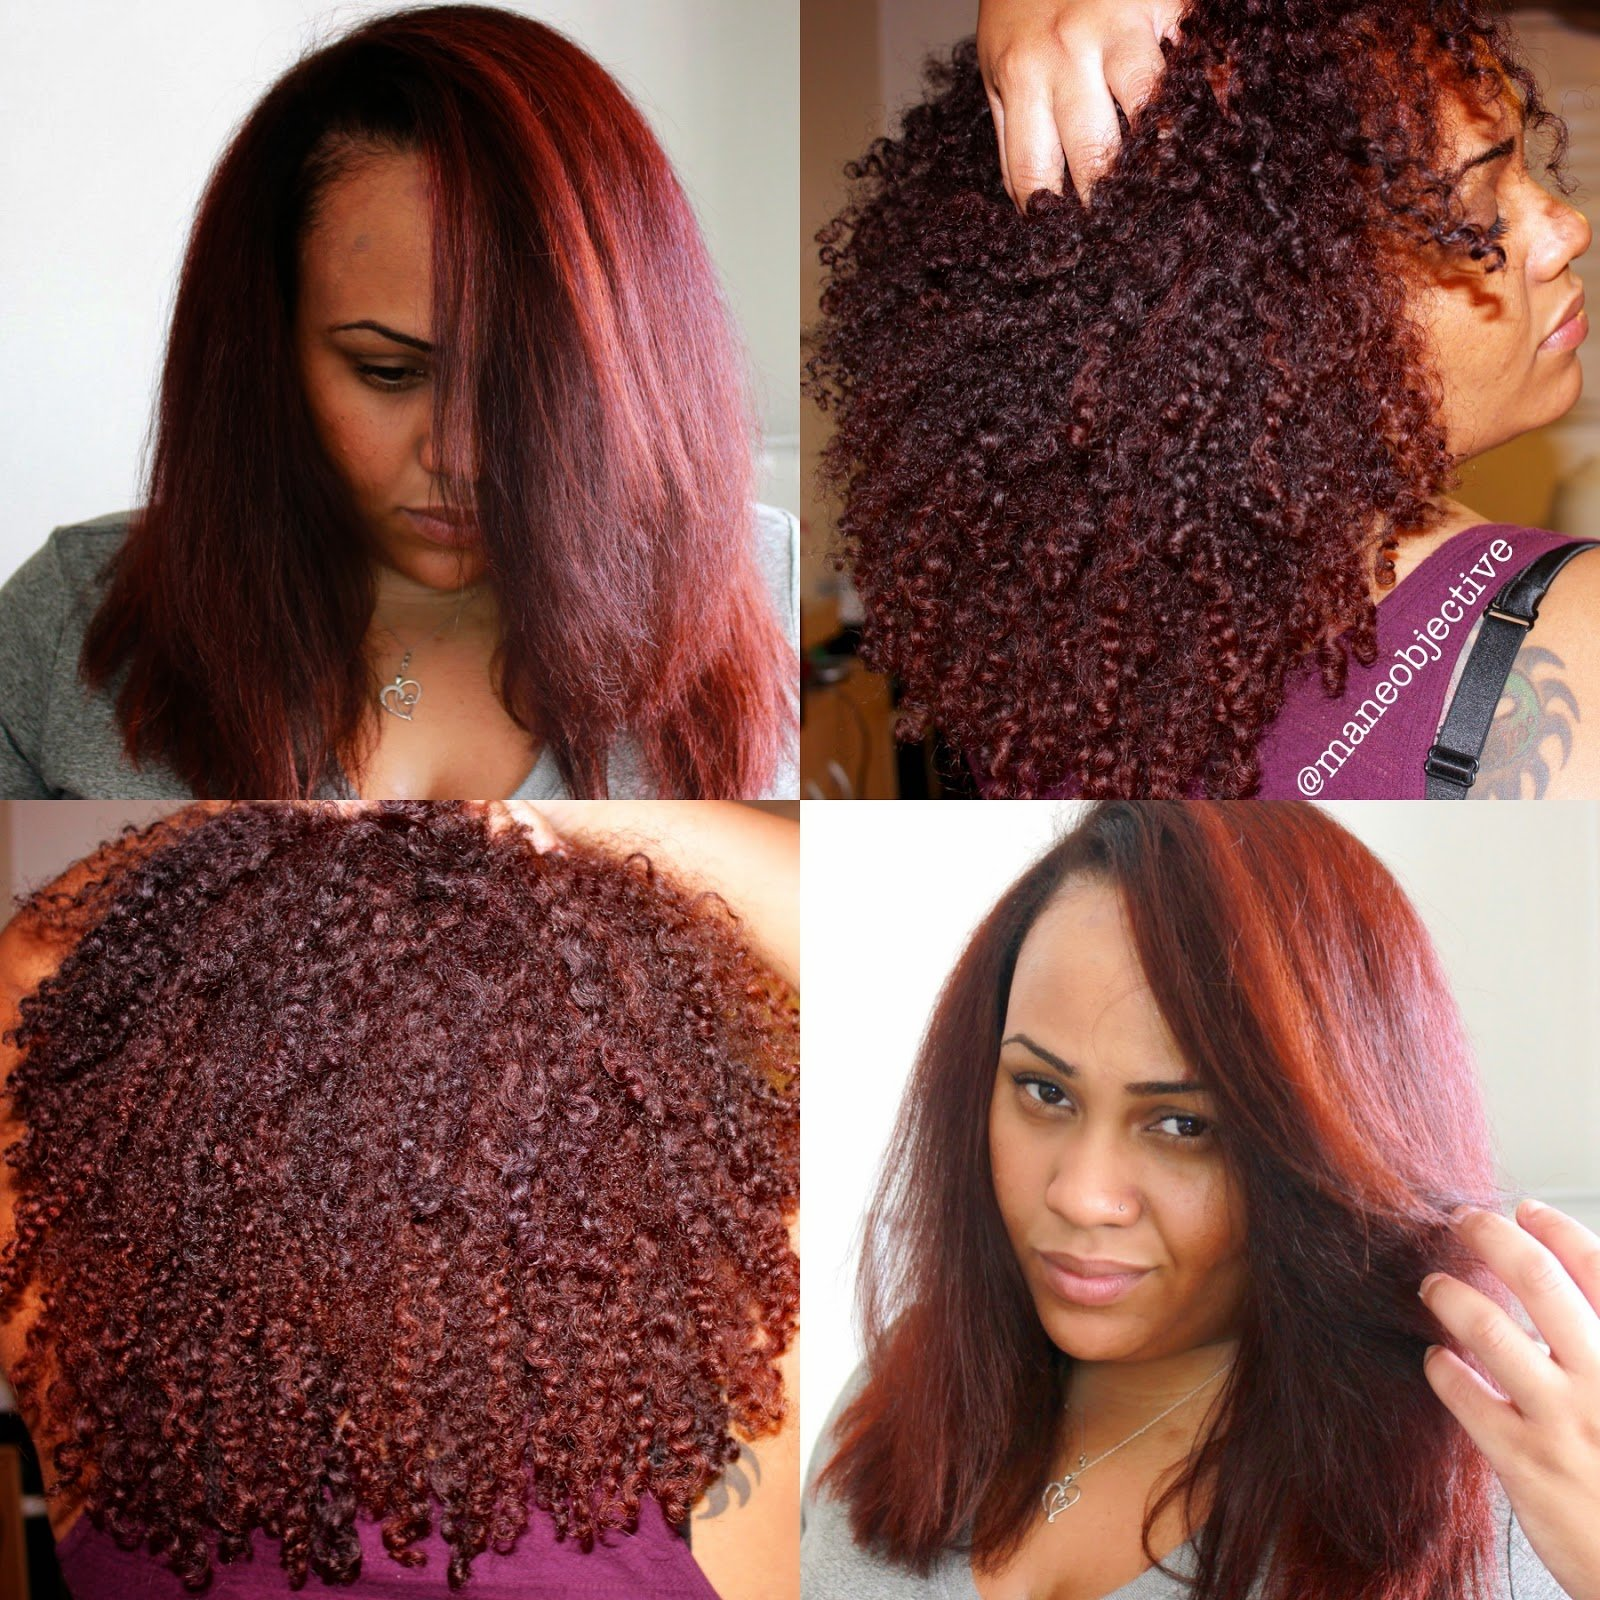 New The Mane Objective 3 Easy Ways To Maintain Vibrant Hair Ideas With Pictures